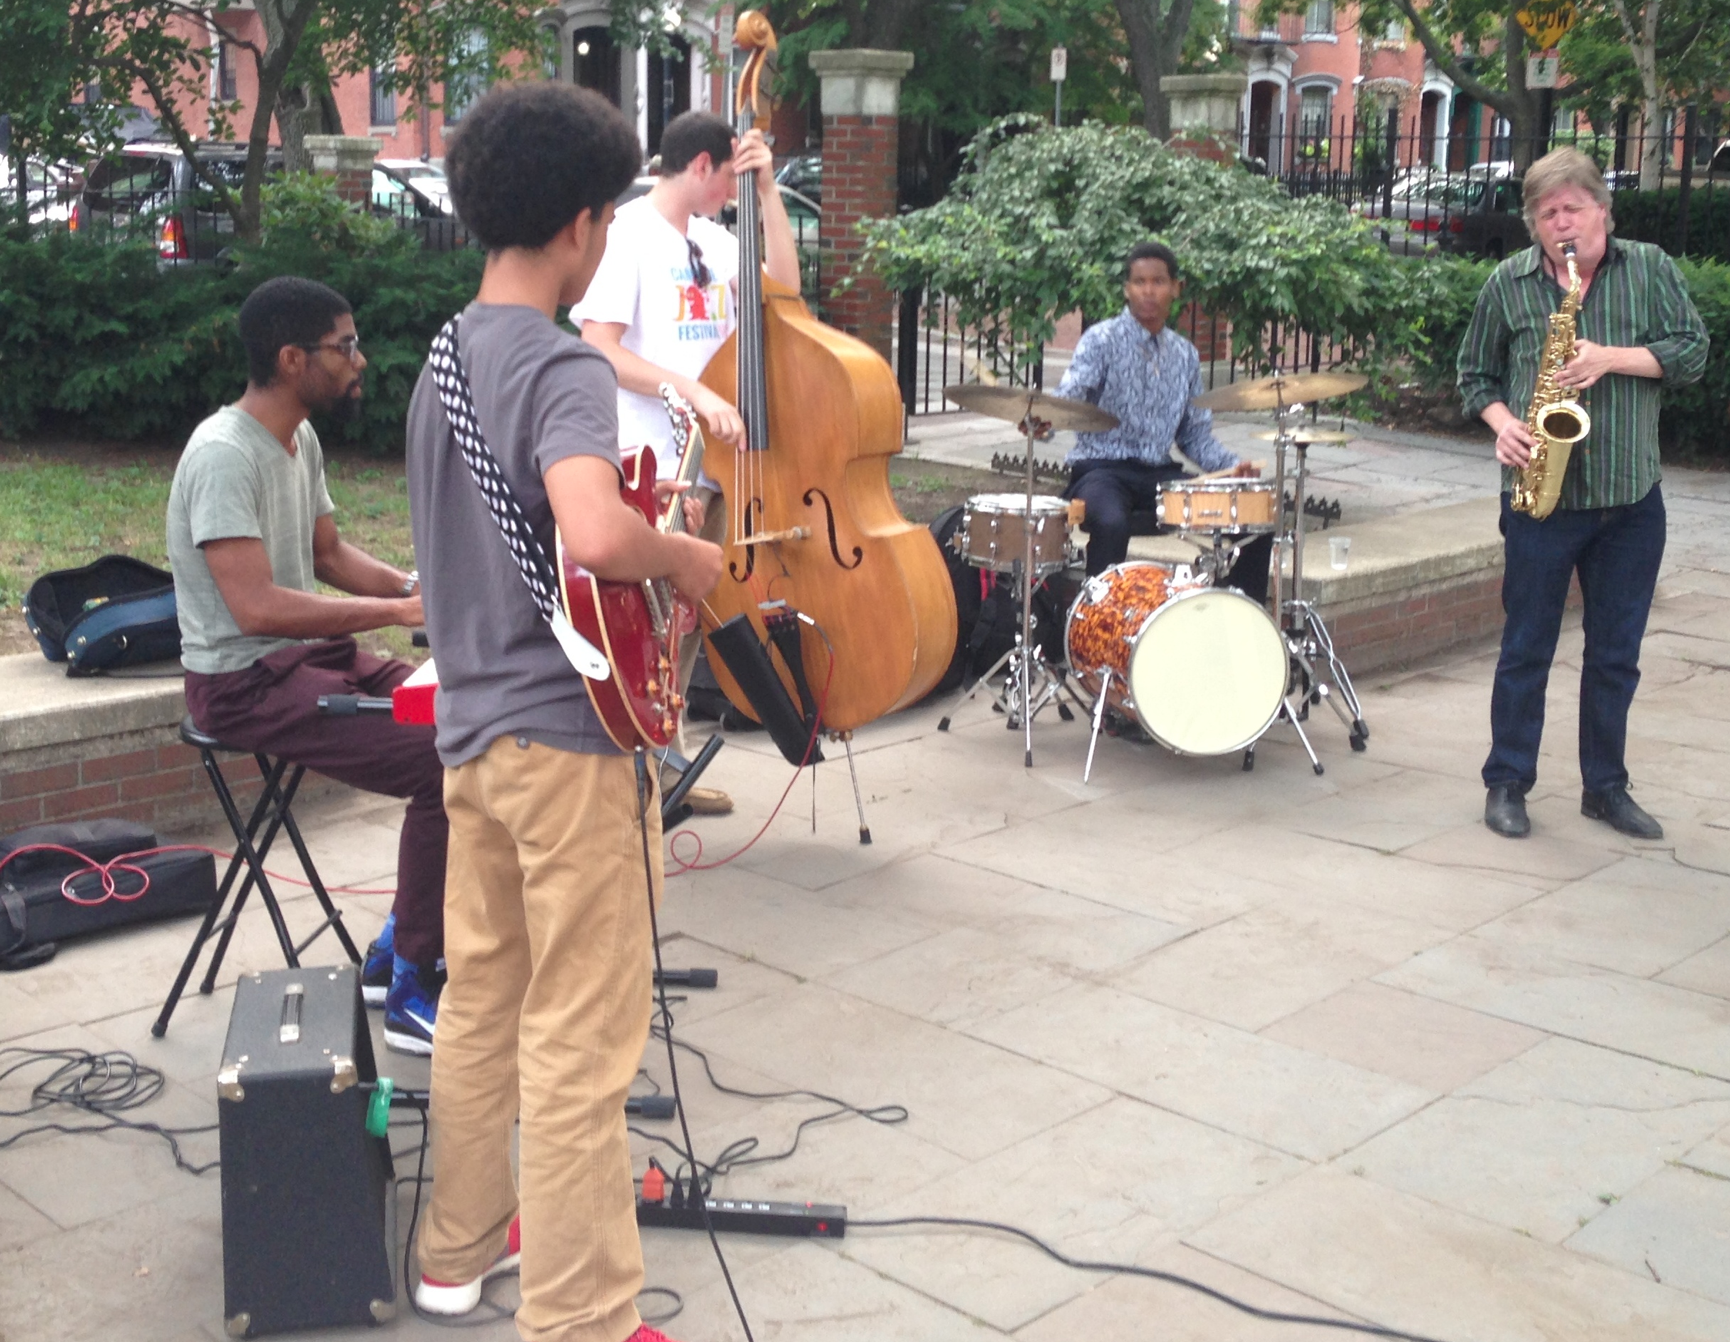 Pat Loomis and Friends playing in Library Park, July 29, 2014. Photo courtesy of Ed Allan